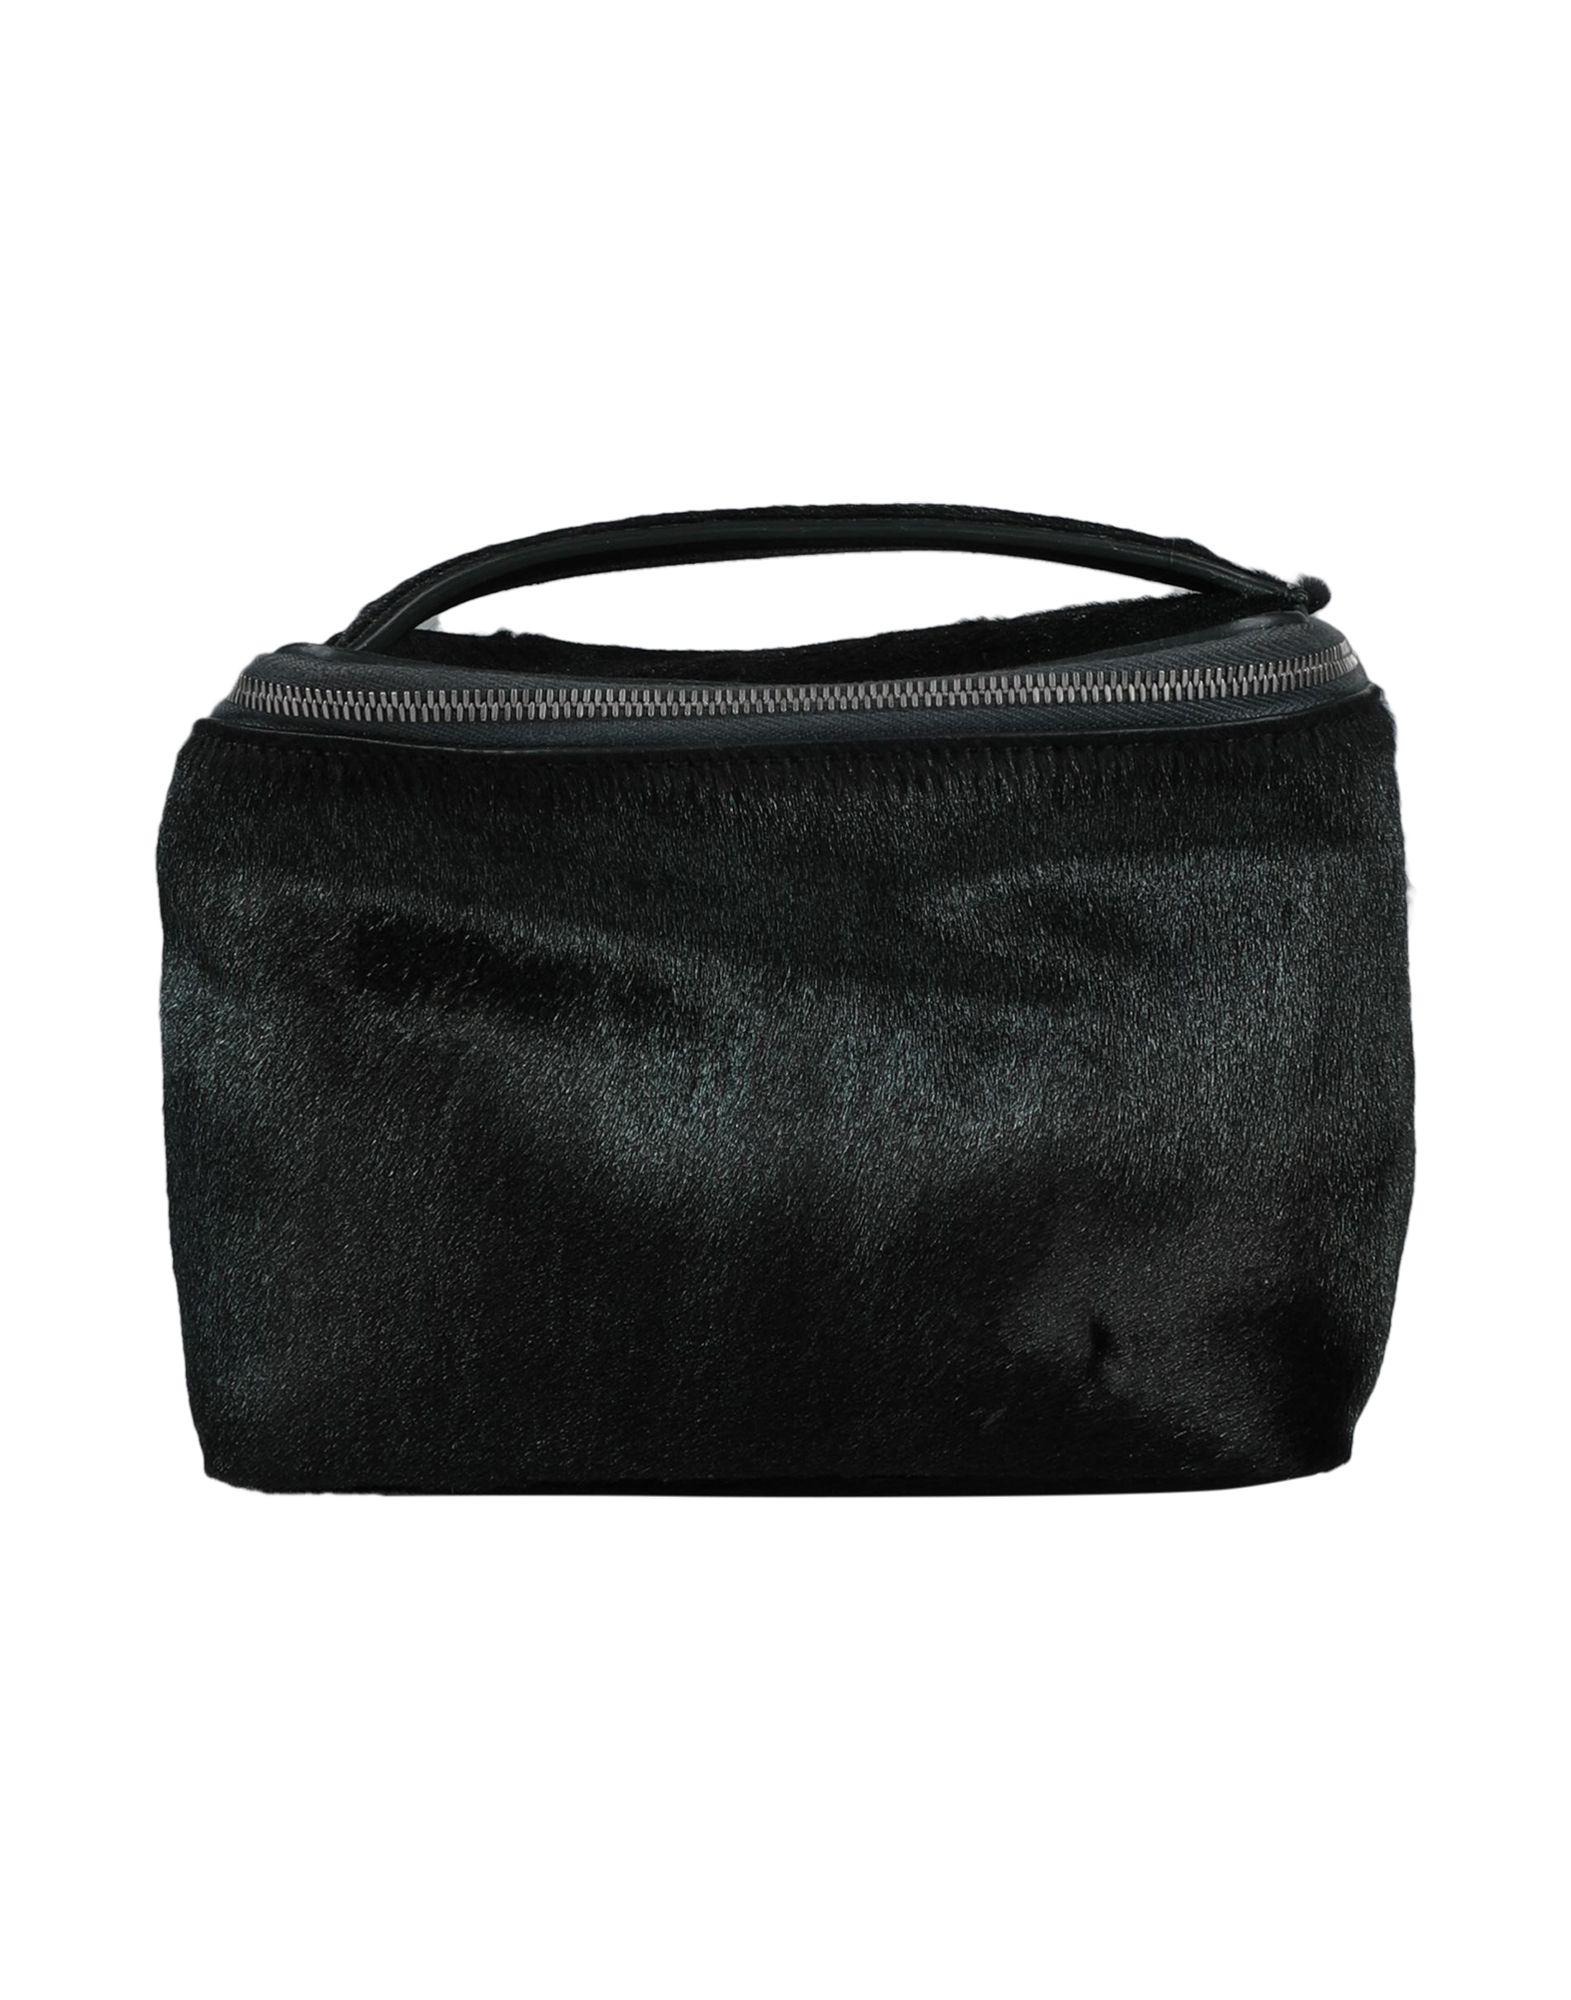 RICK OWENS Beauty cases. leather, no appliqués, solid color, zipper closure, fully lined, contains non-textile parts of animal origin. Soft Leather